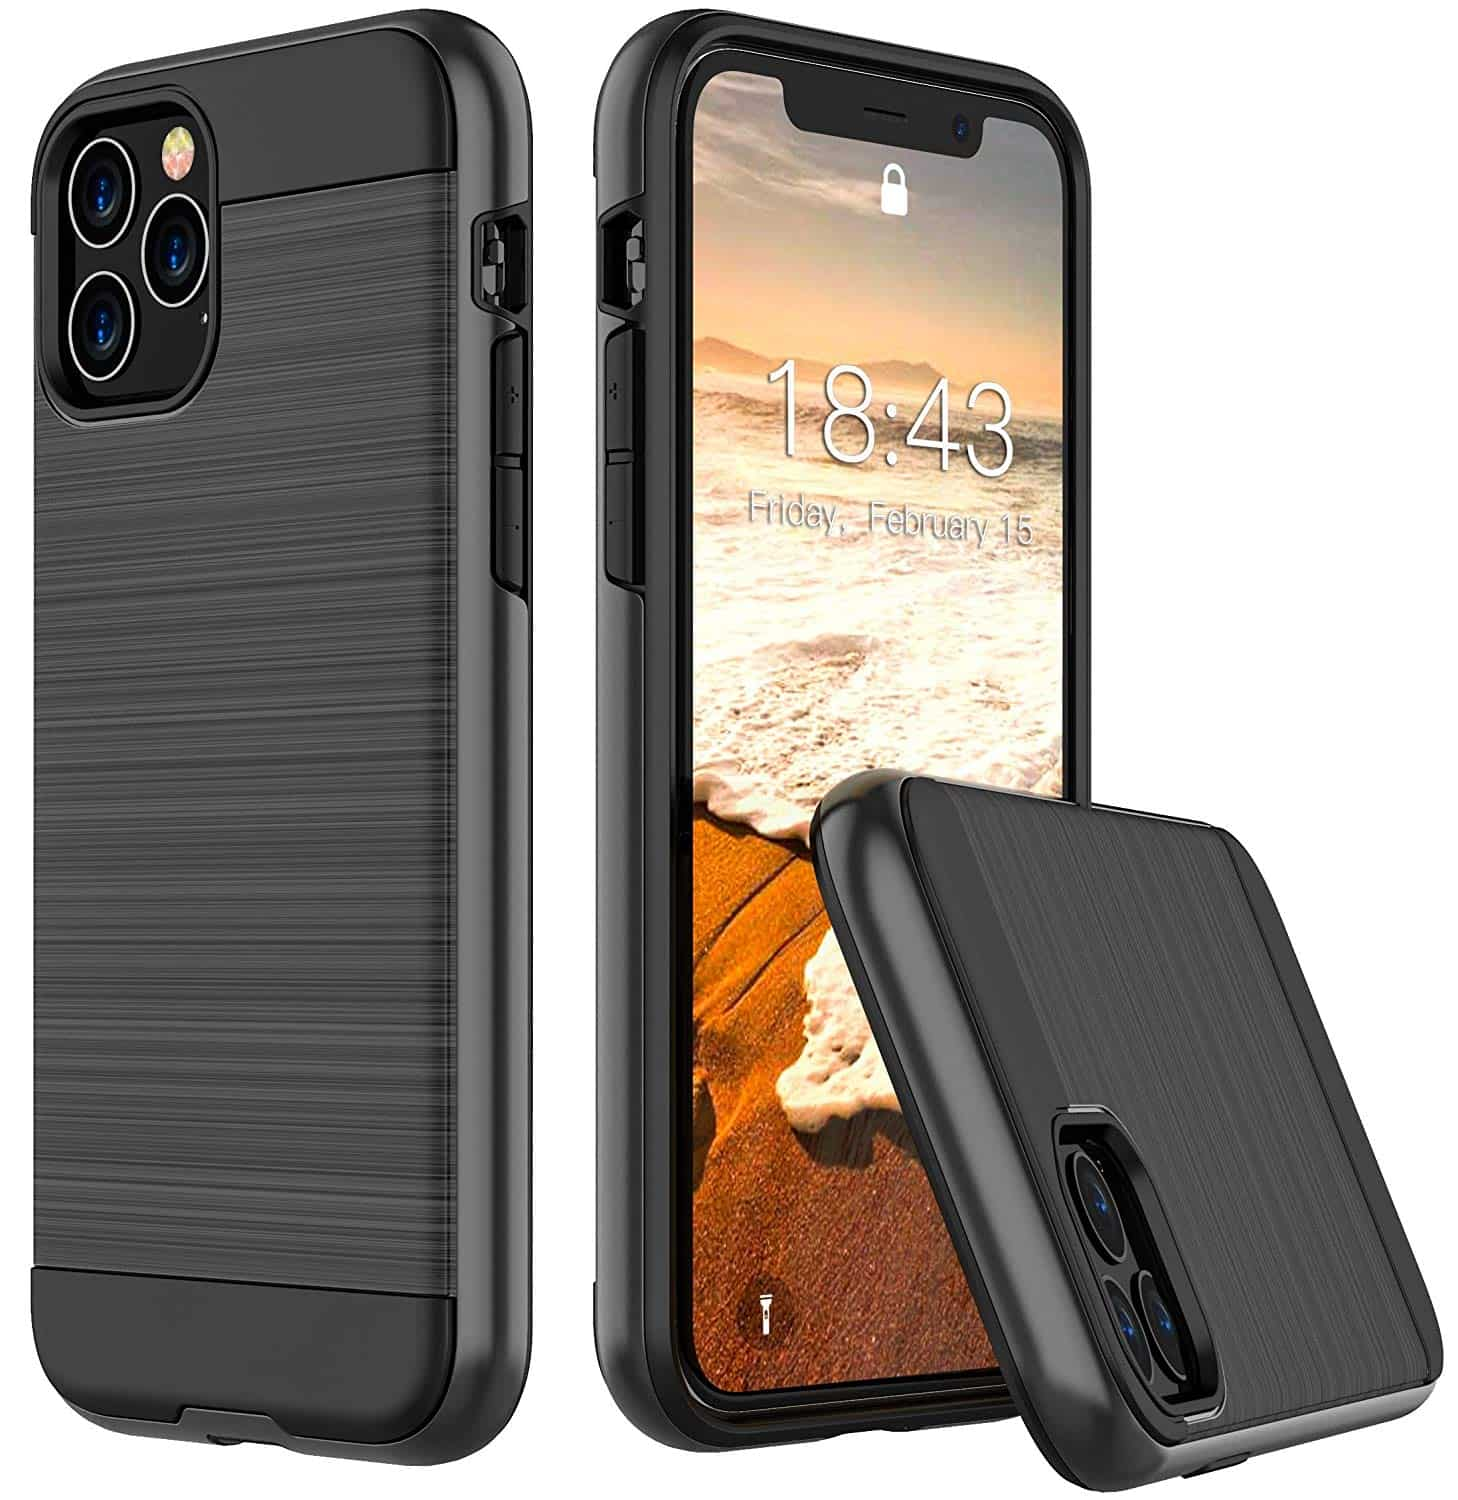 Best iPhone 11 Pro Max Case in 2019 1